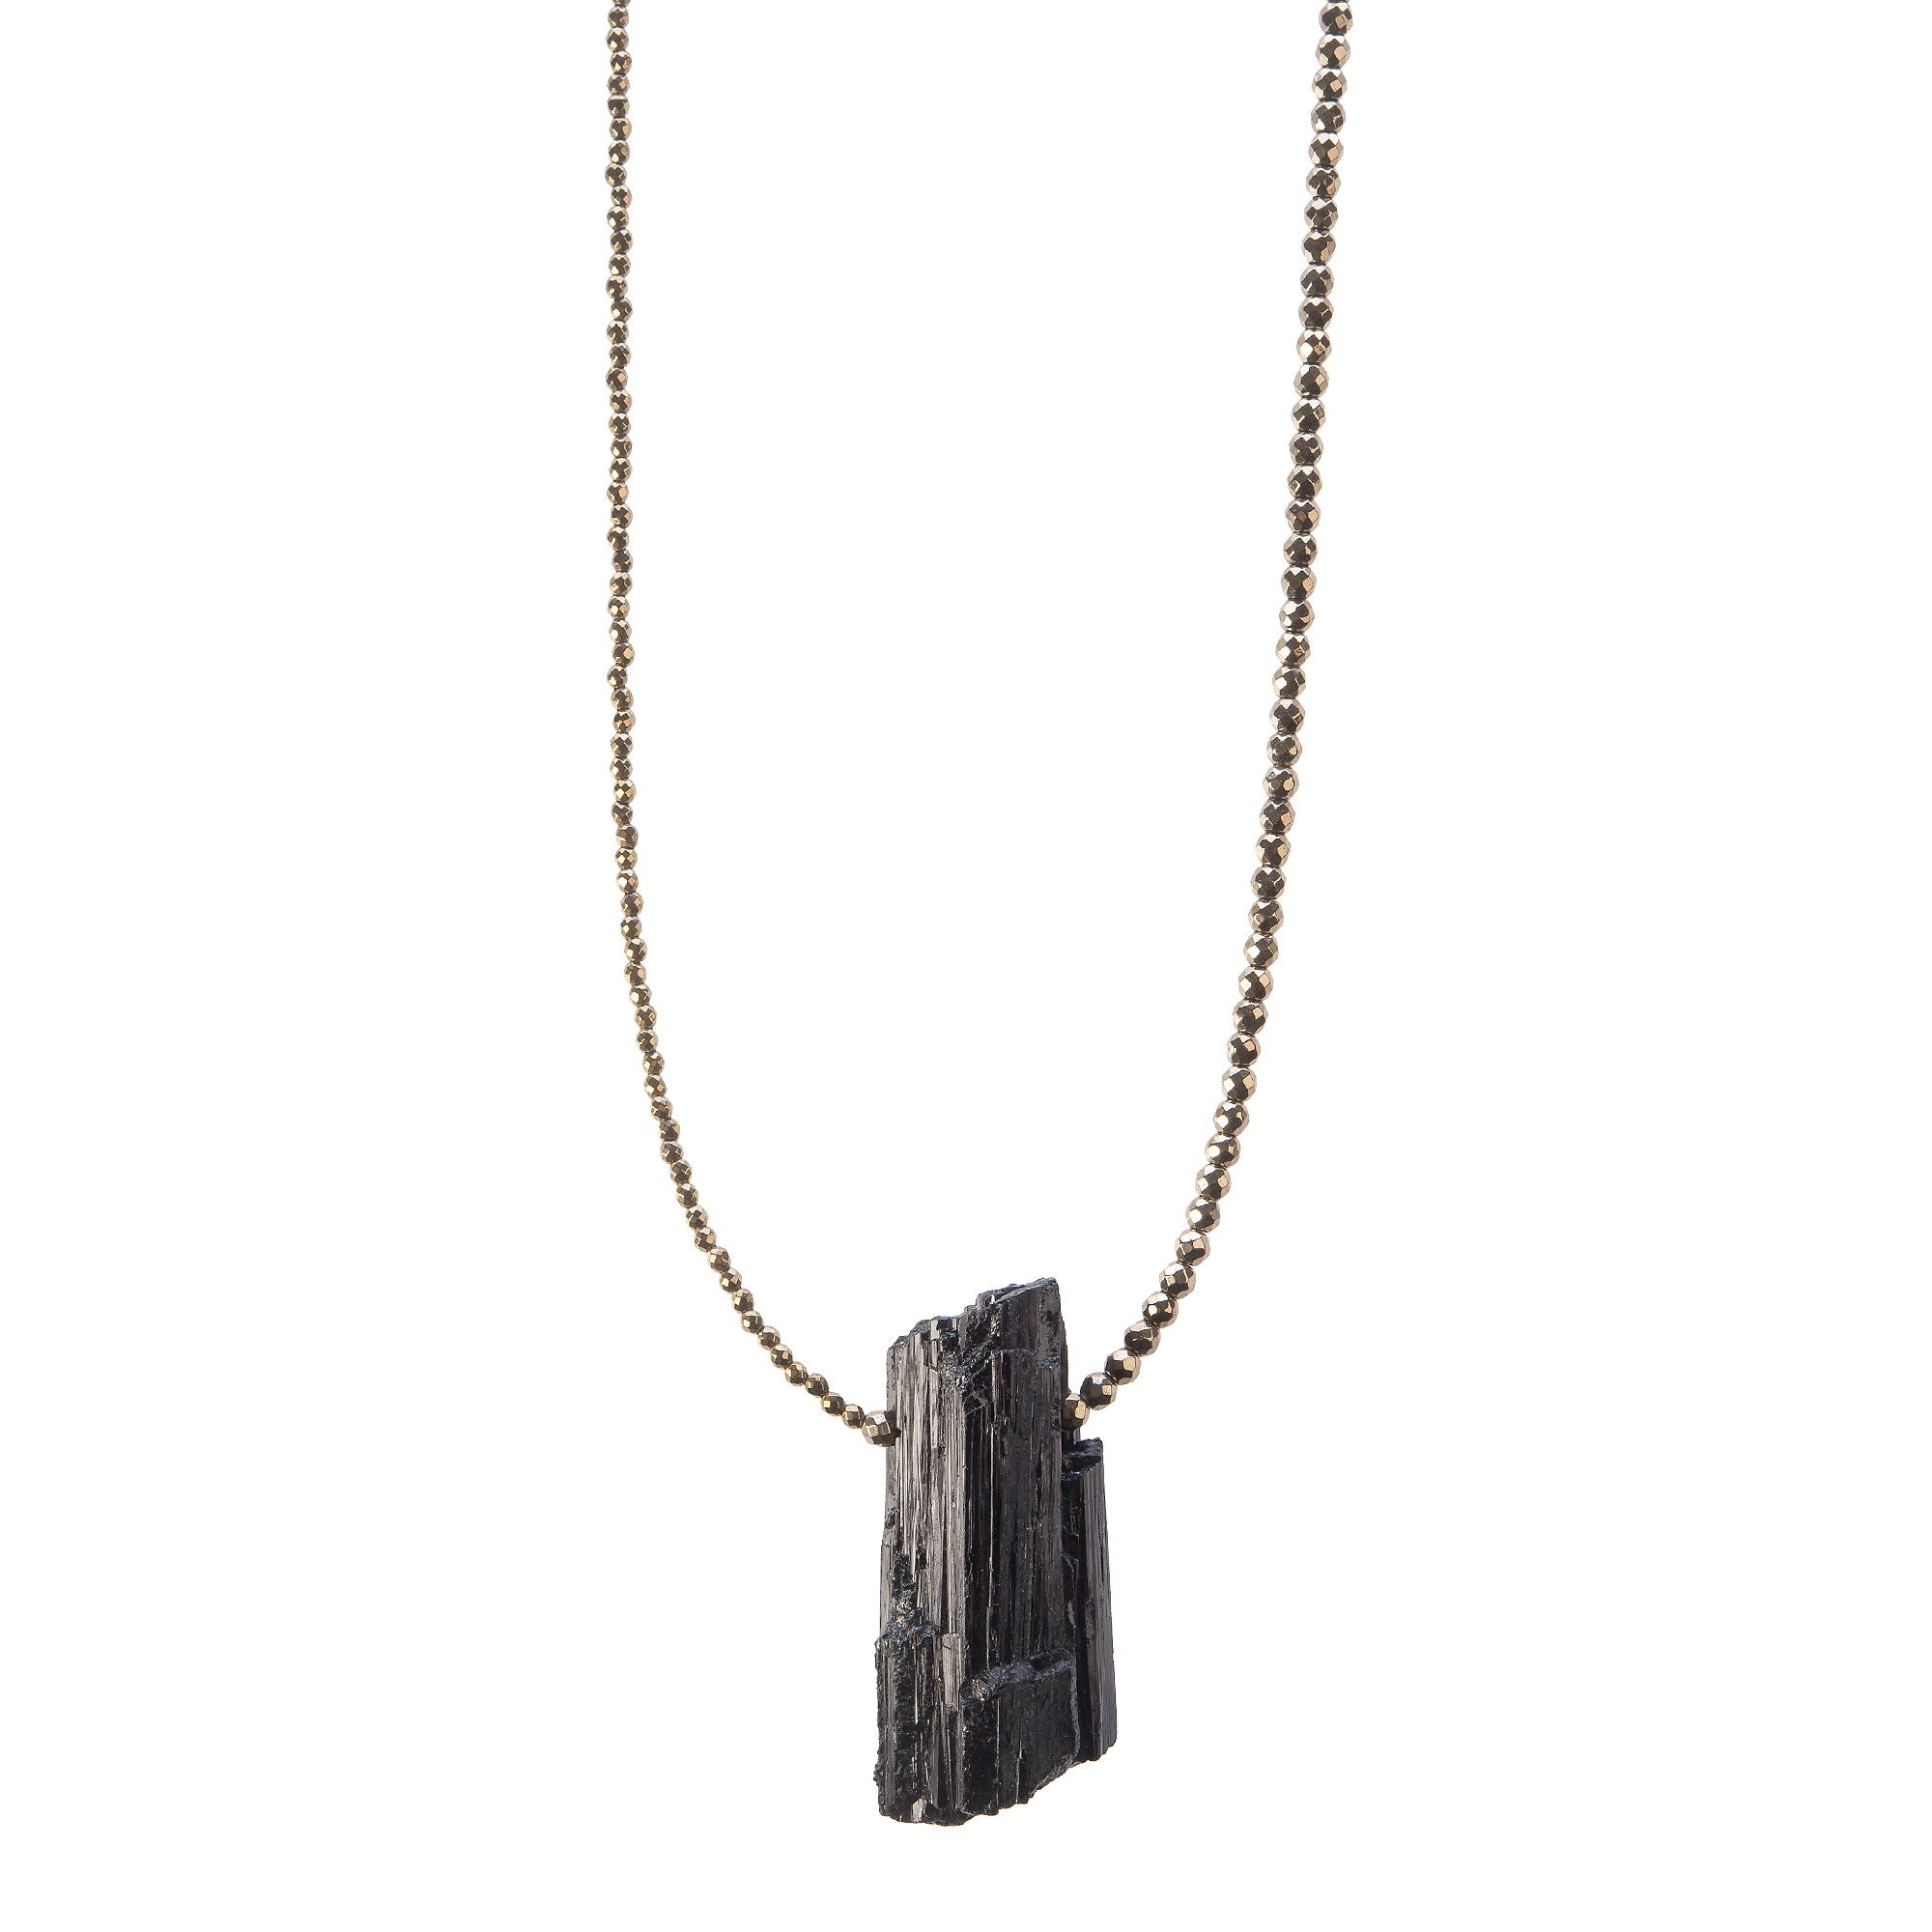 Necklace from Etnoart collection - EAN62